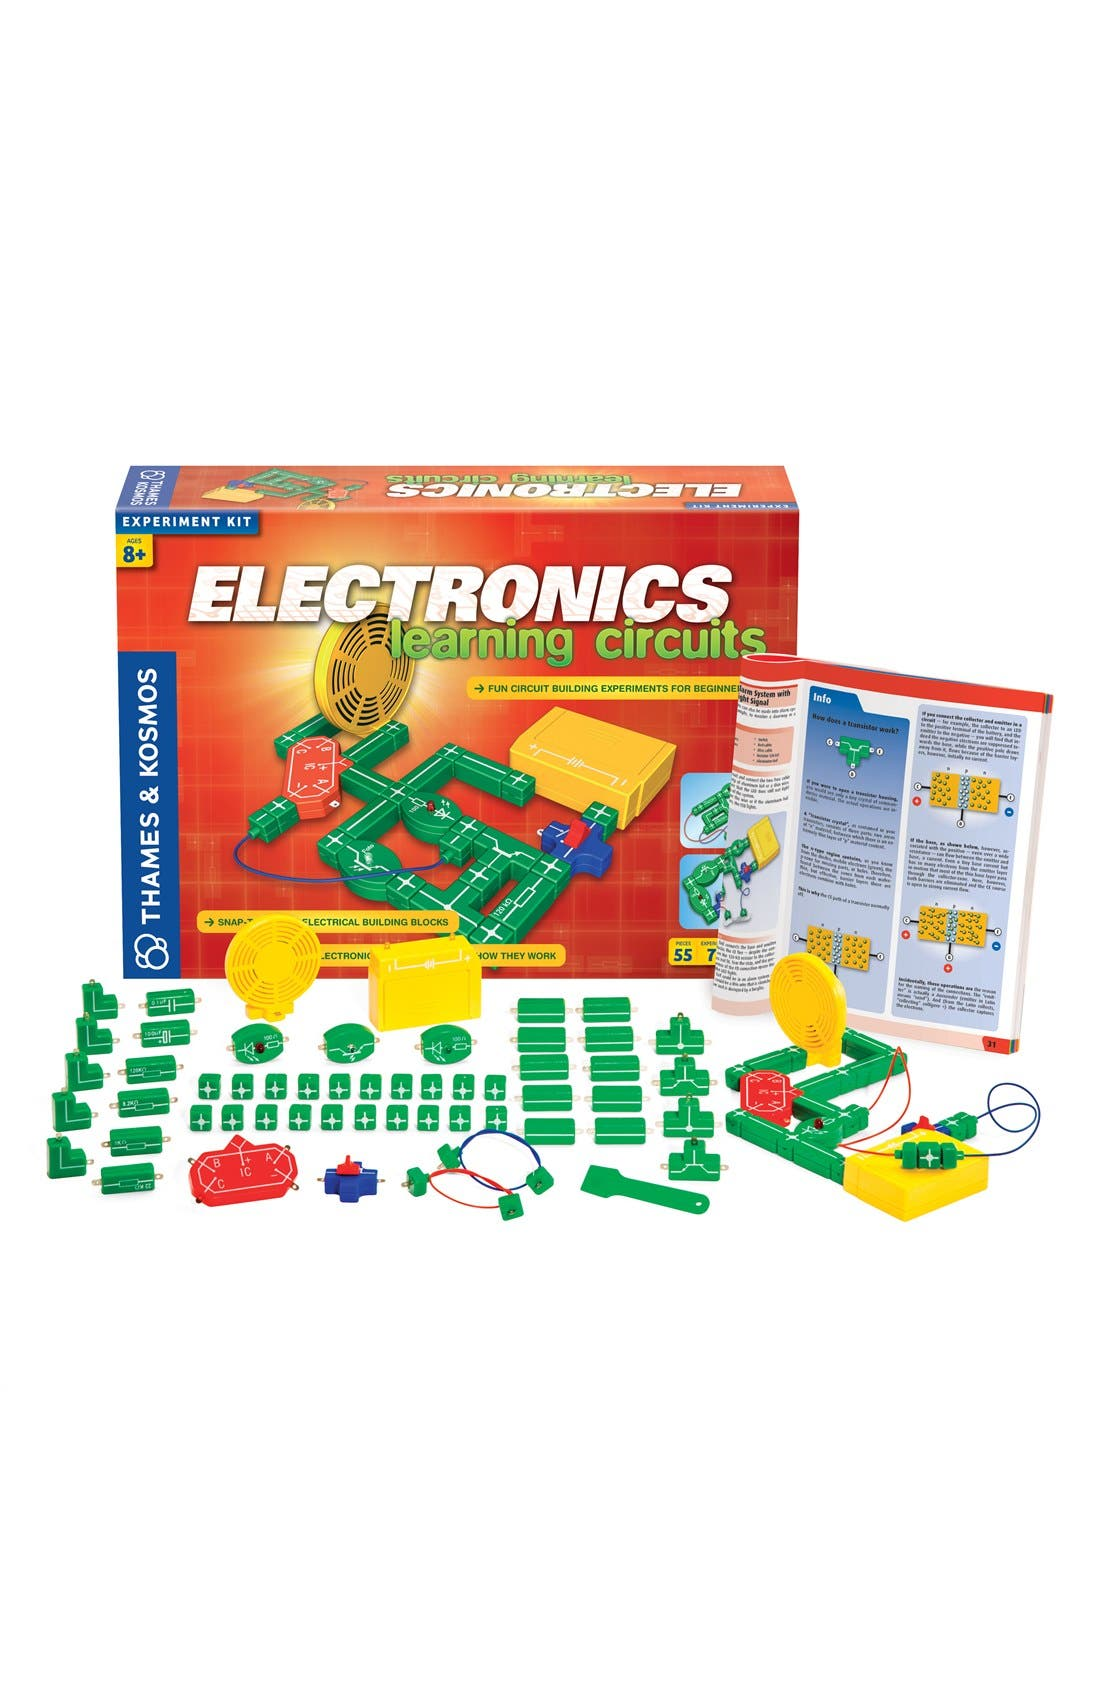 'Electronics Learning Circuits' Experiment Kit,                             Main thumbnail 1, color,                             NO COLOR